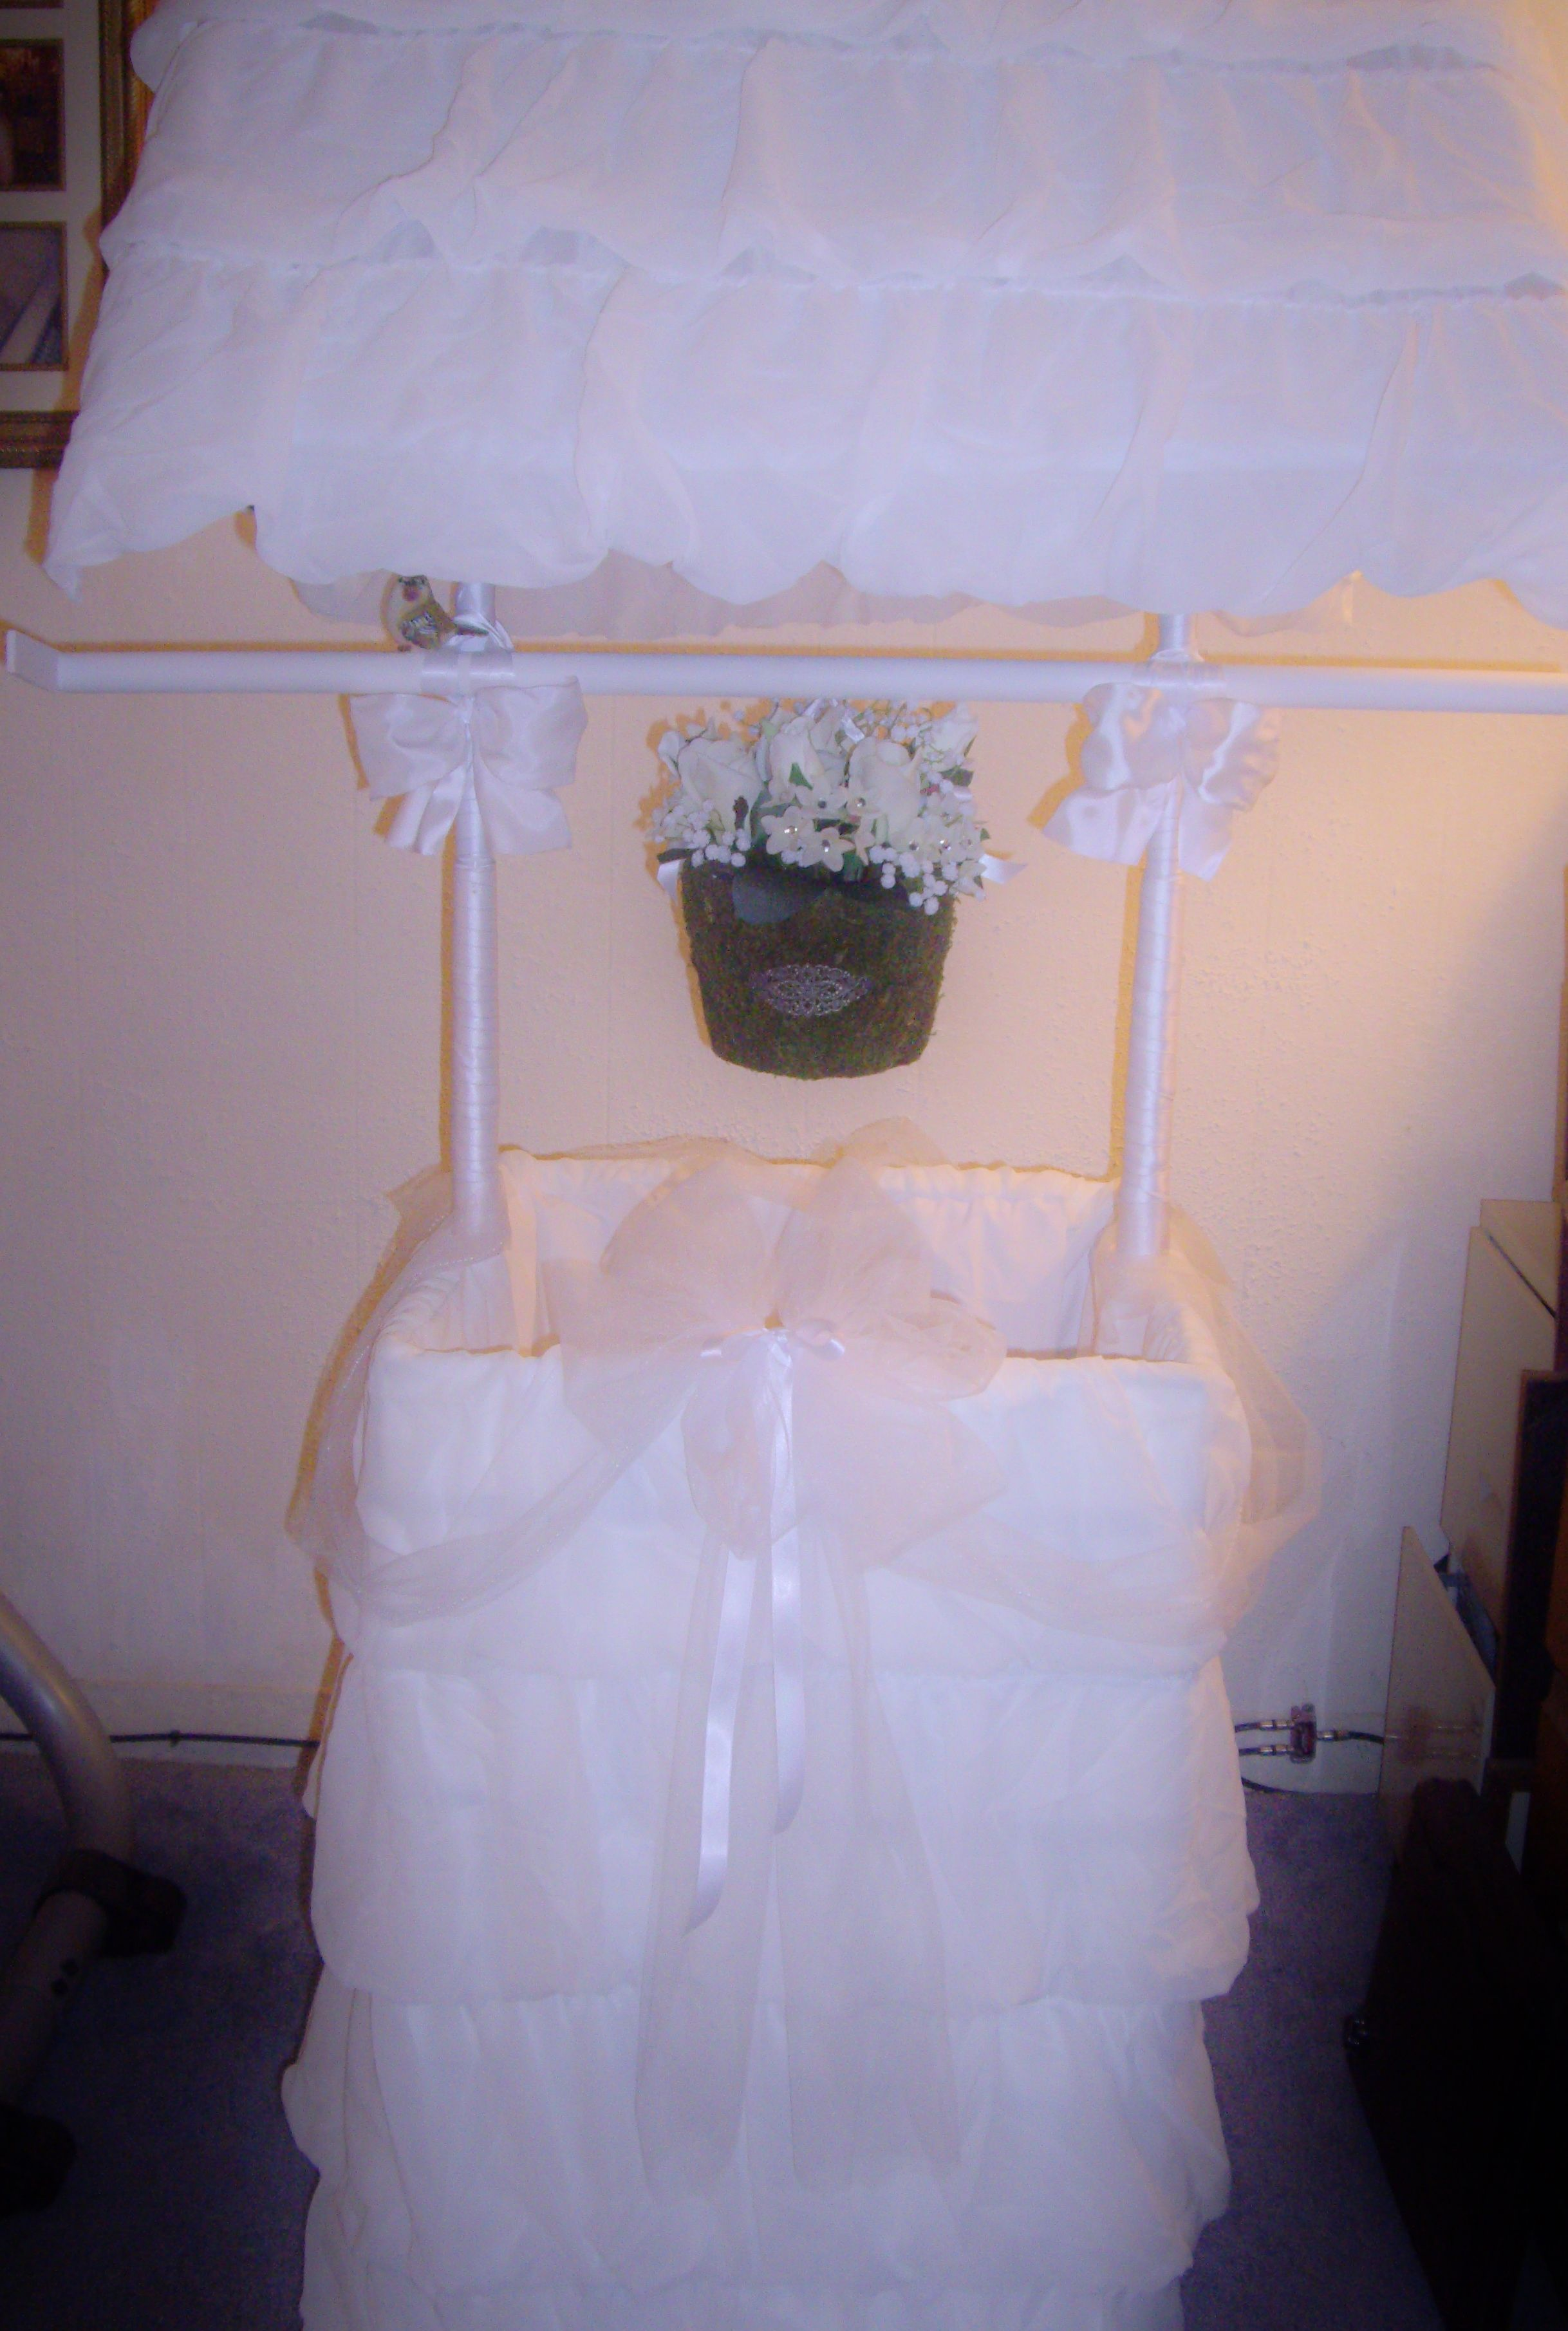 Bridal or Baby shower wishing well made by Rose